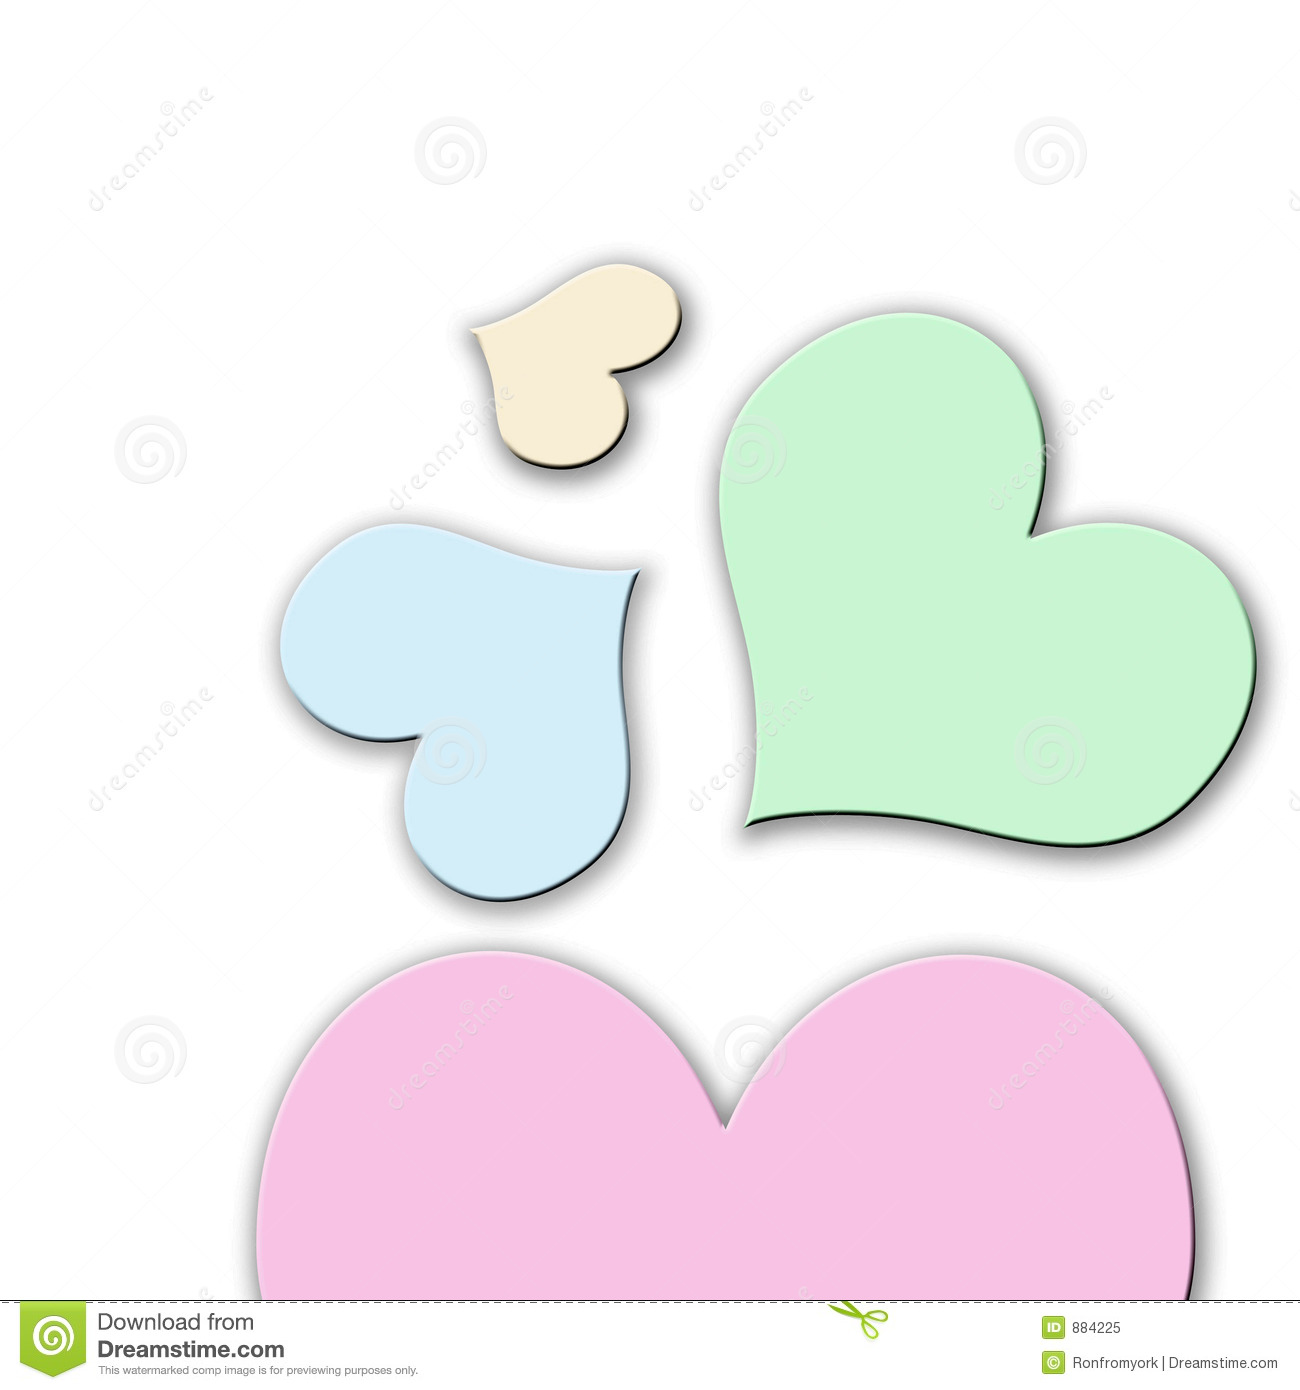 Pastel hearts clipart vector free stock Pastel Colored Hearts Royalty Free Stock Photo - Image: 884225 vector free stock